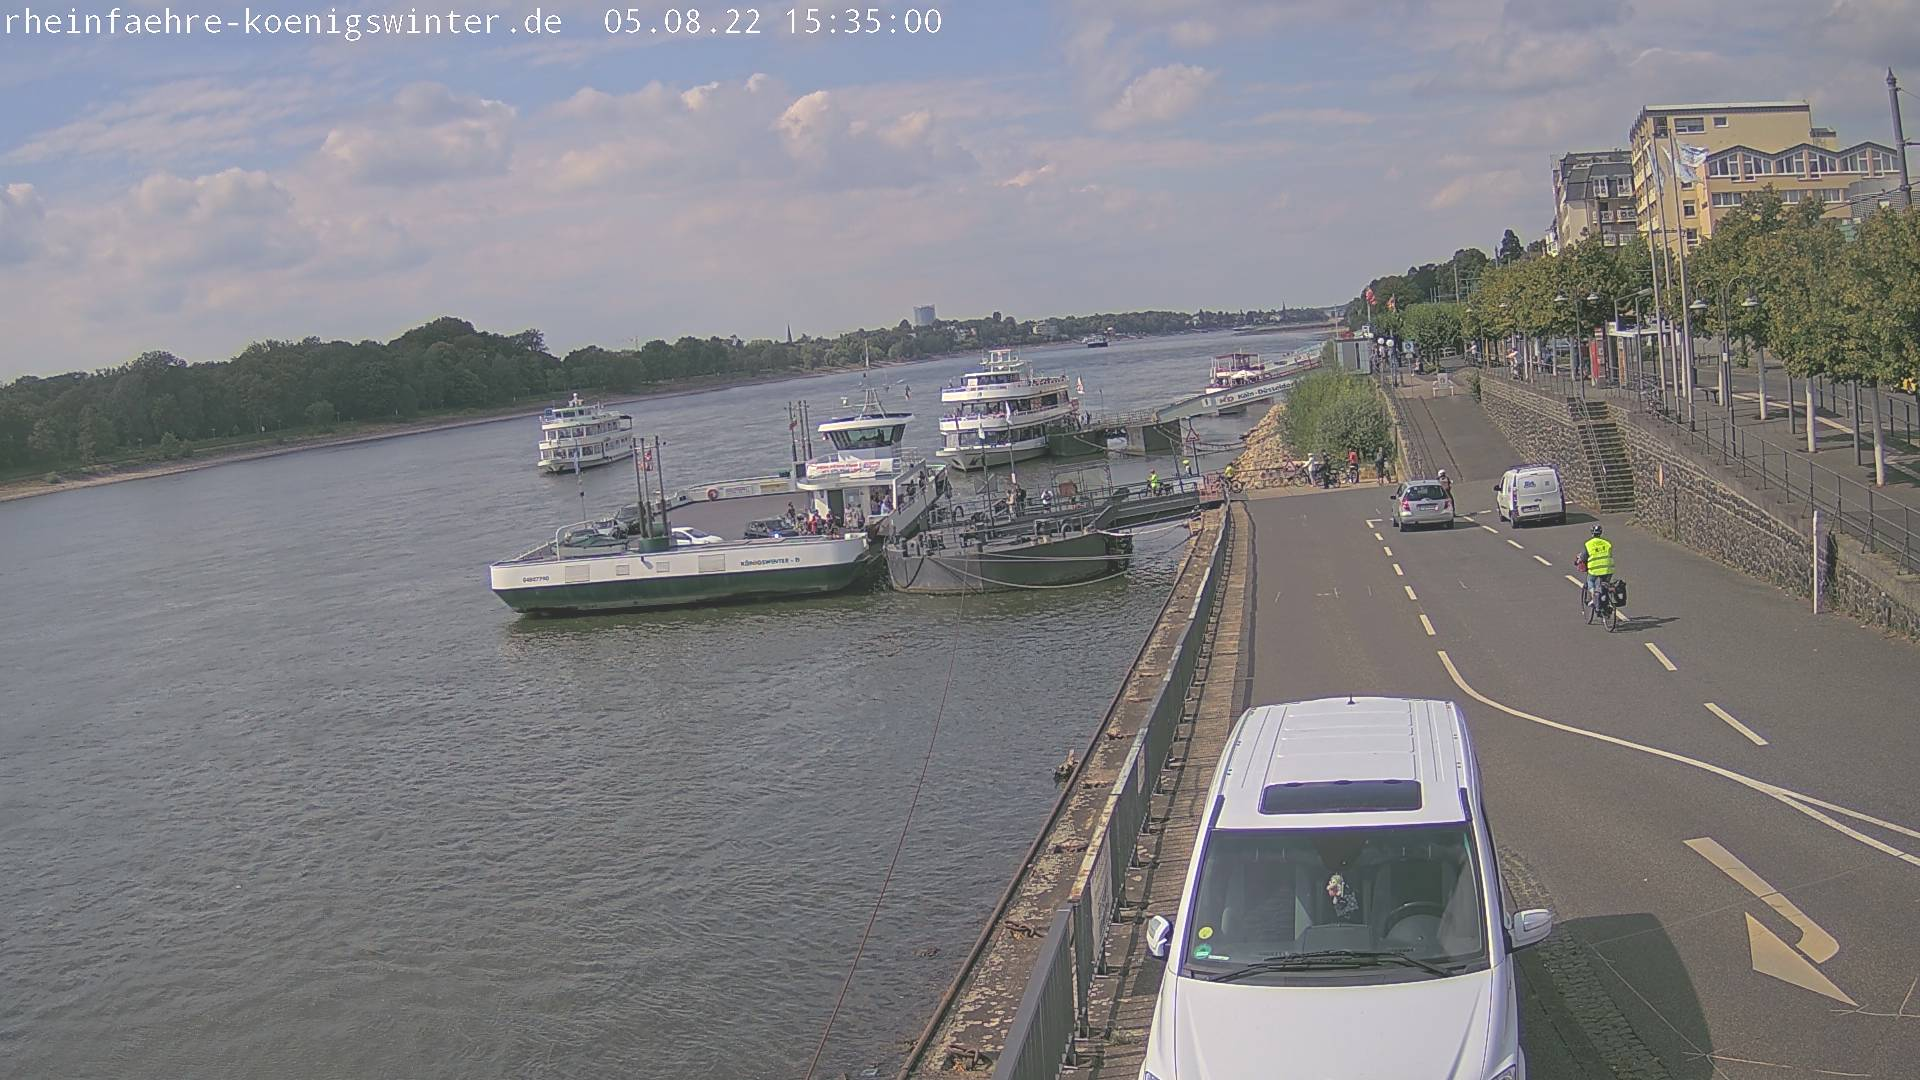 Webcam am Rheinufer in Königswinter